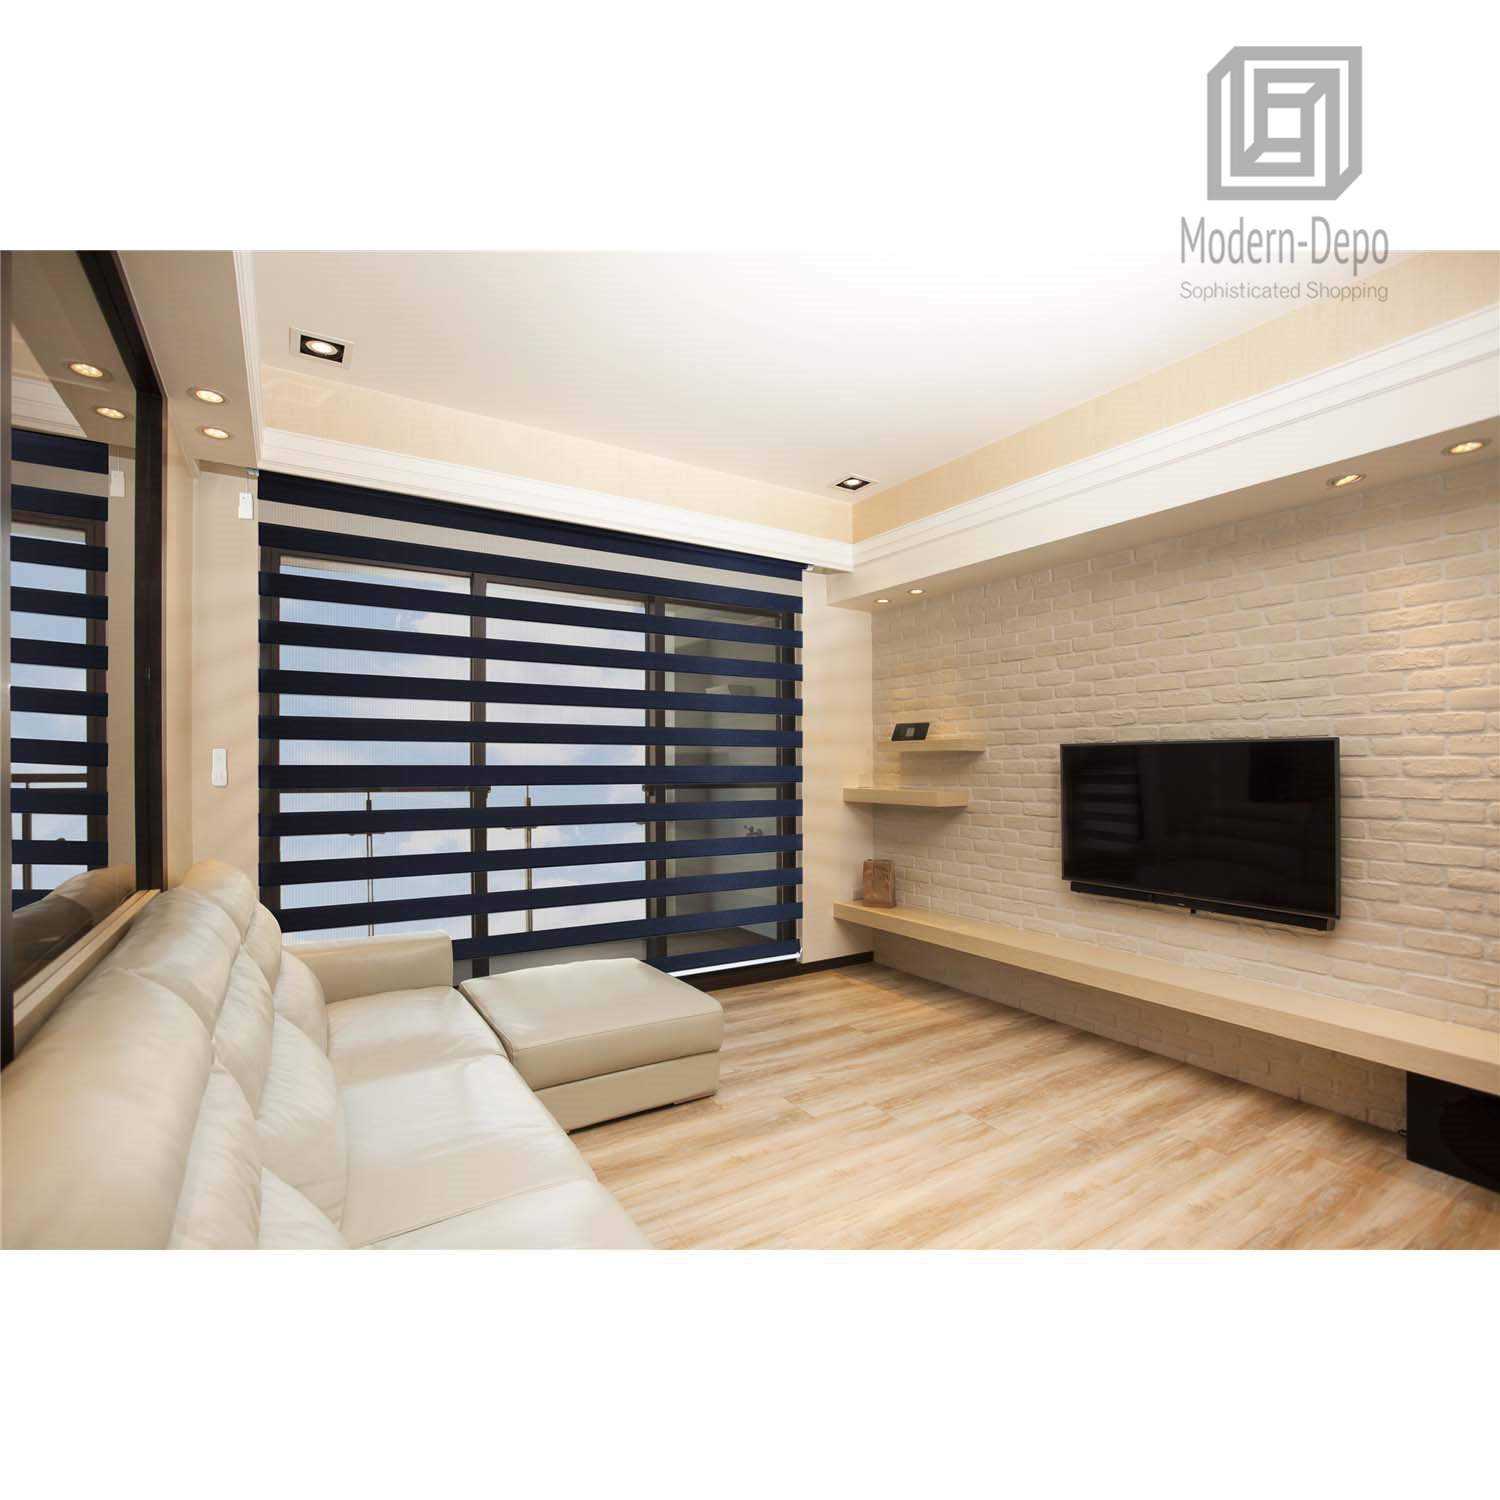 Details About Zebra Design Roller Window Shades Motorized Remote Privacy Horizontal Blinds